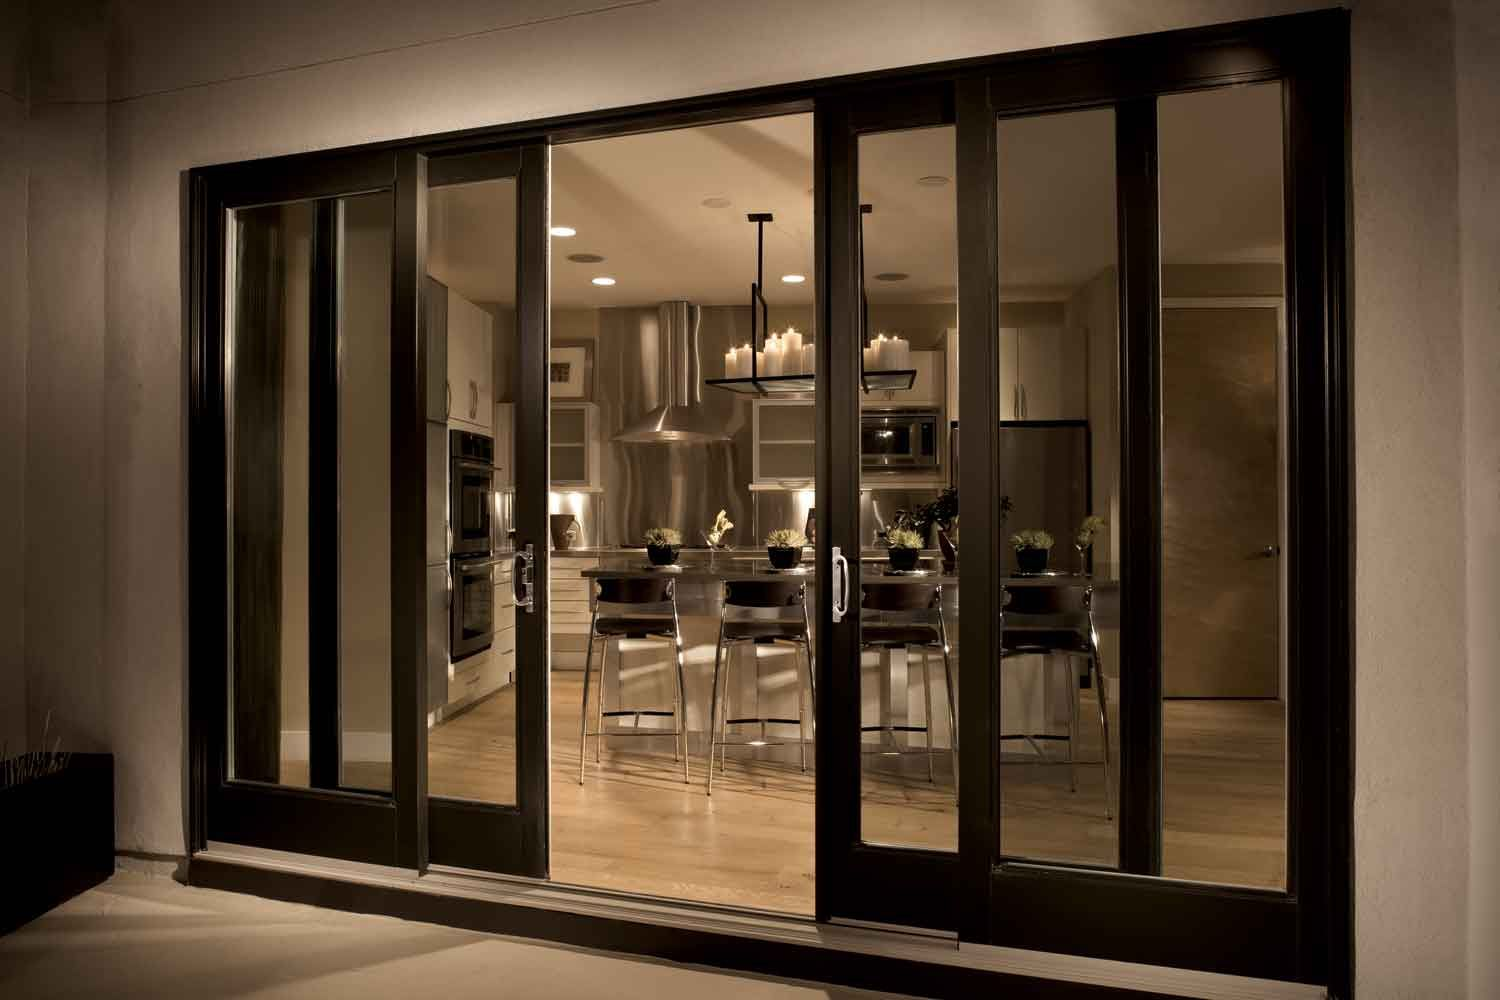 Exterior Glass Patio Doors - Exterior double glass patio doors patio doors are doors that connect the door to the